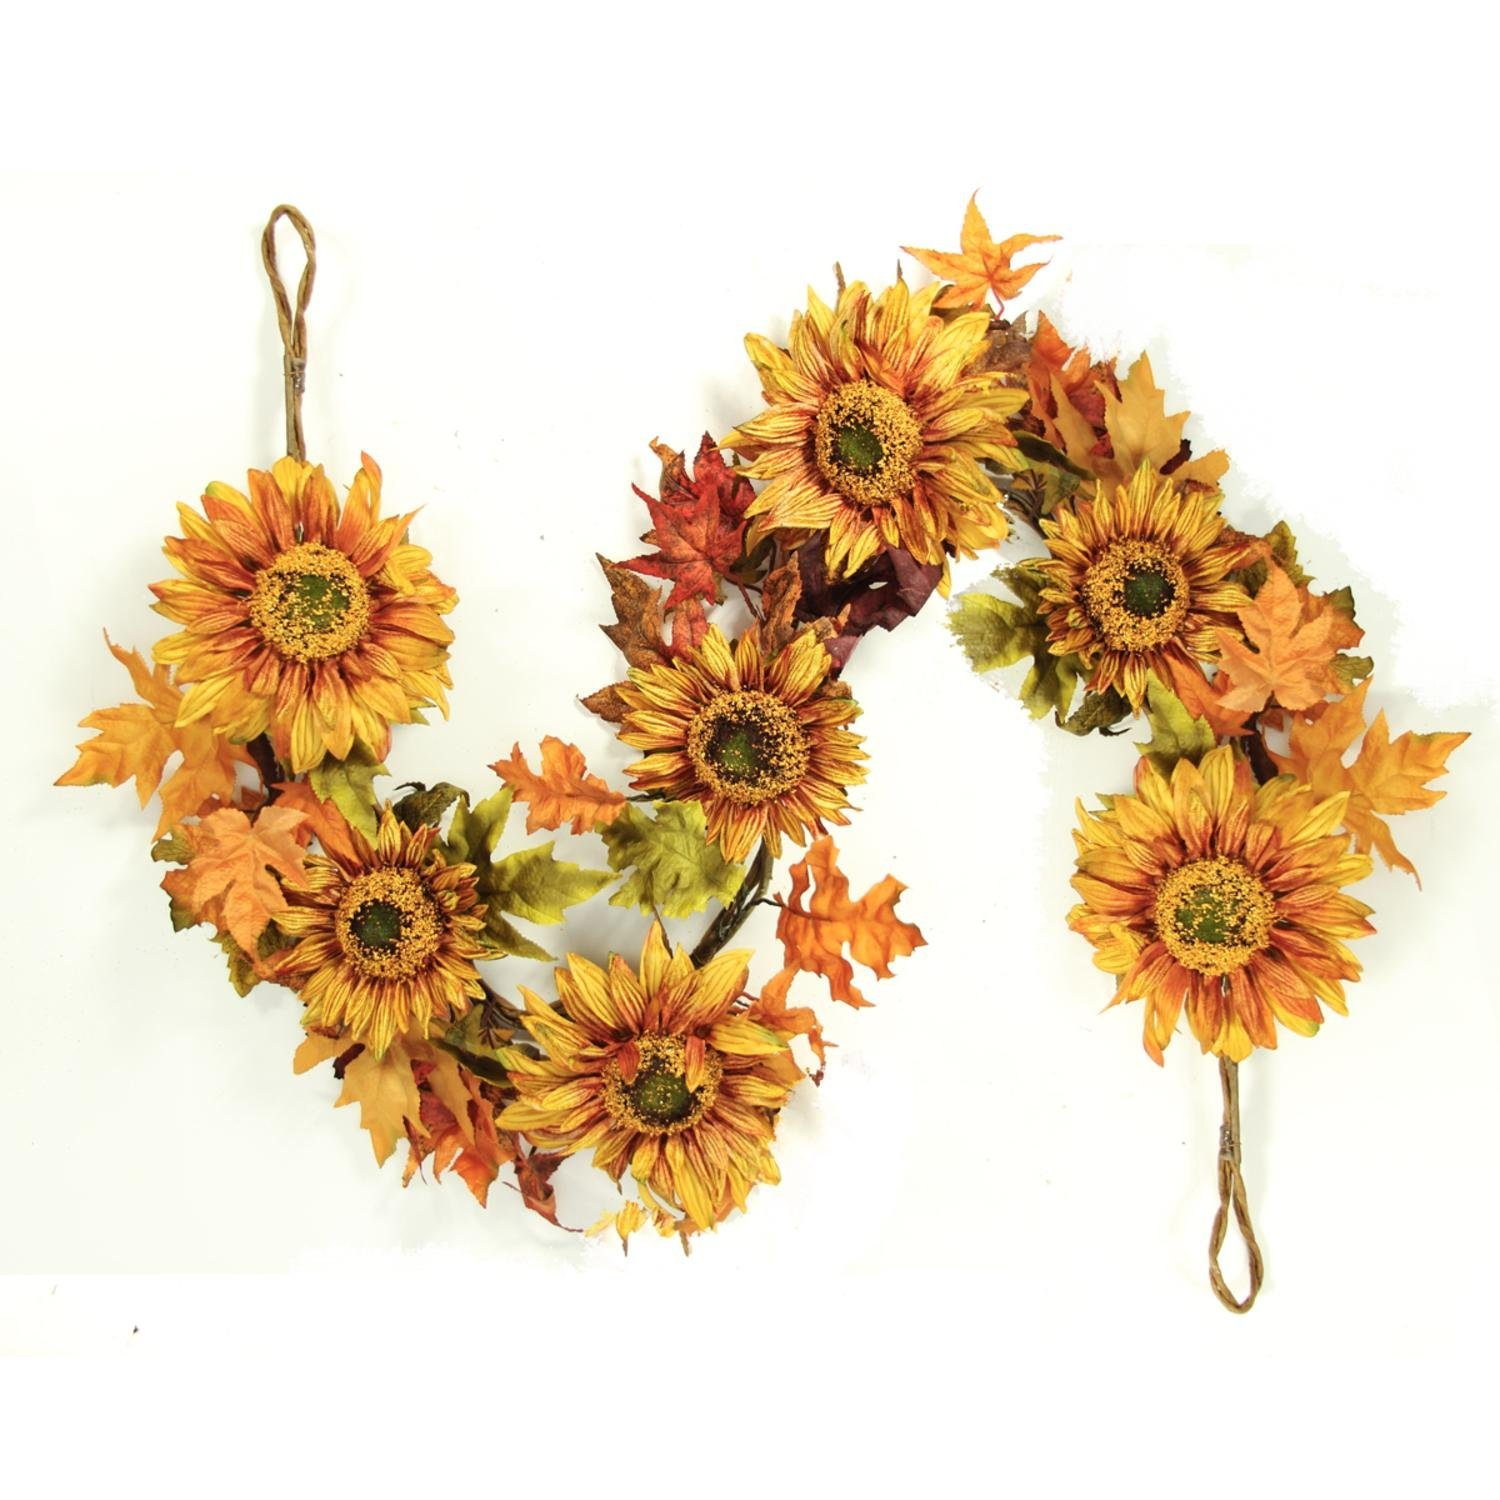 5' Autumn Fall Harvest Sunflower and Leaves Artificial Silk Floral Garland - Unlit